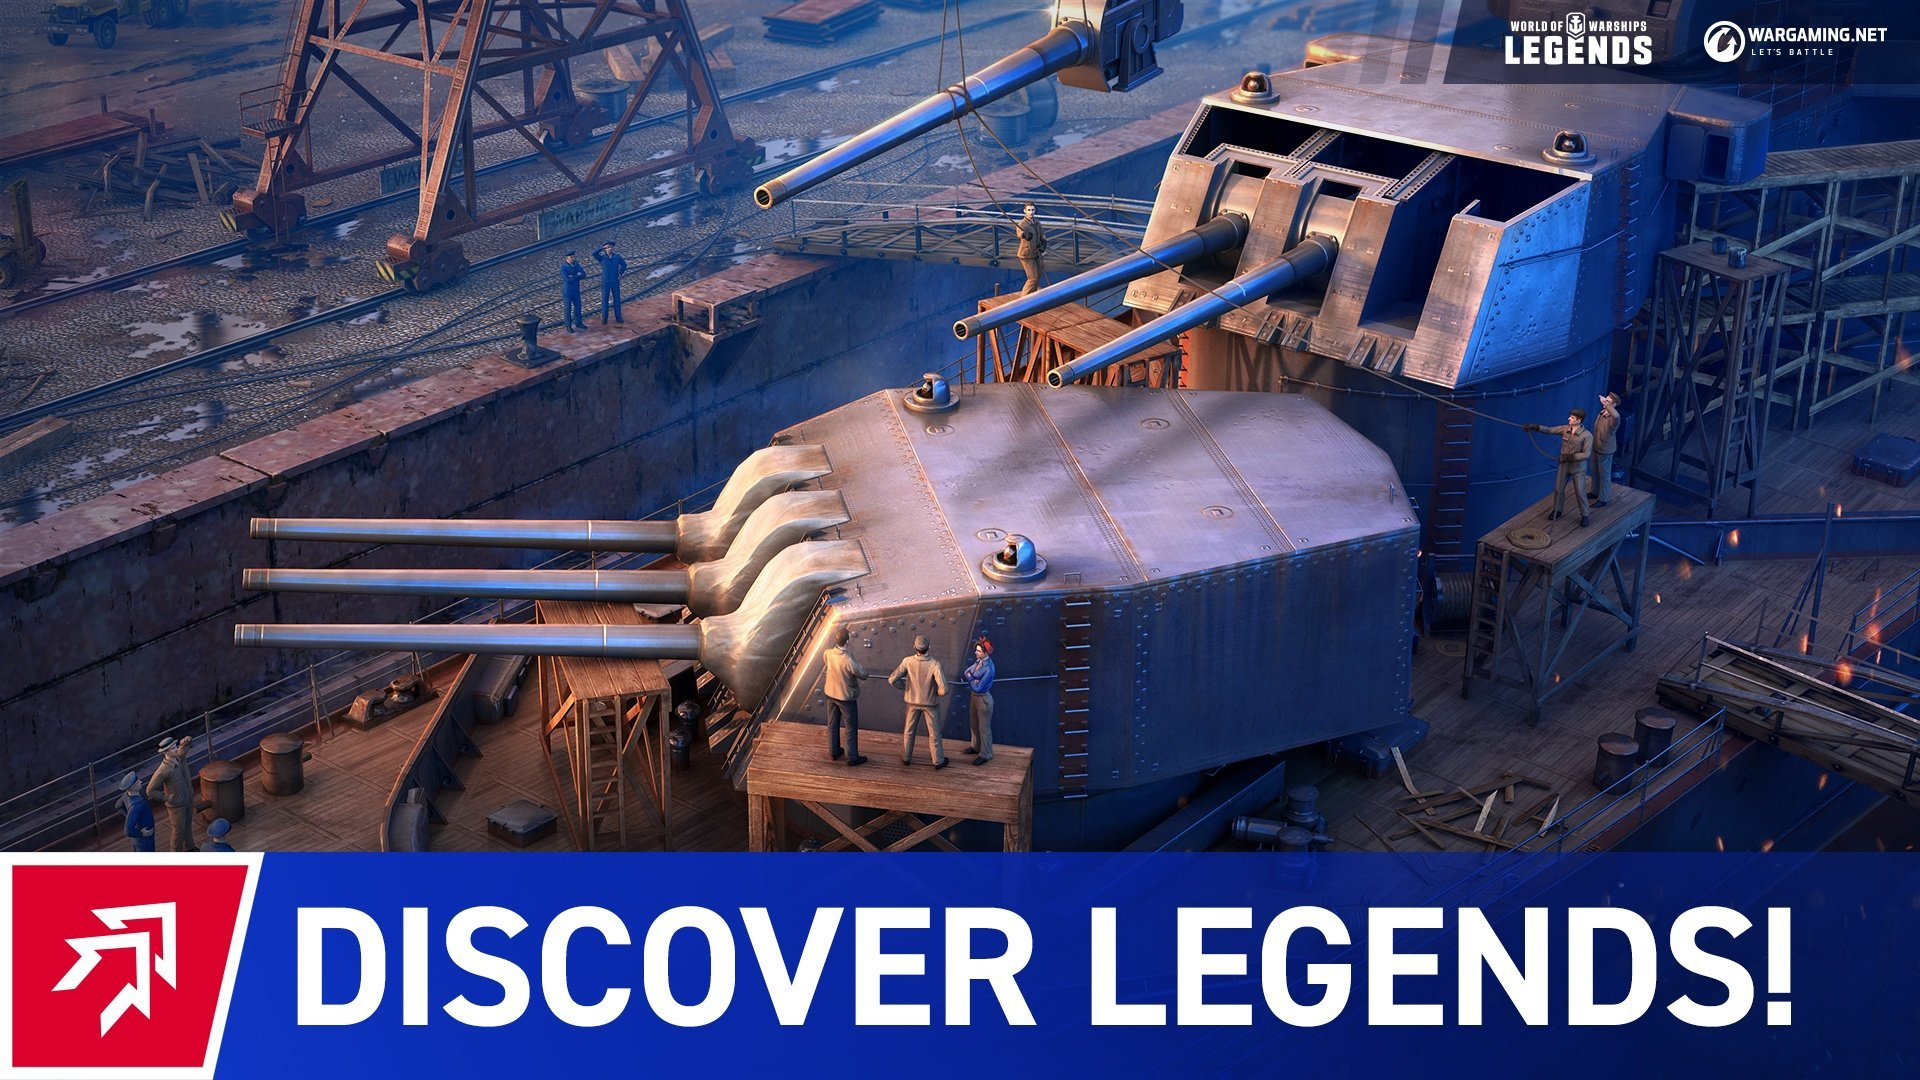 WoWS: Legends - Become a naval legend - WoWS: Legends